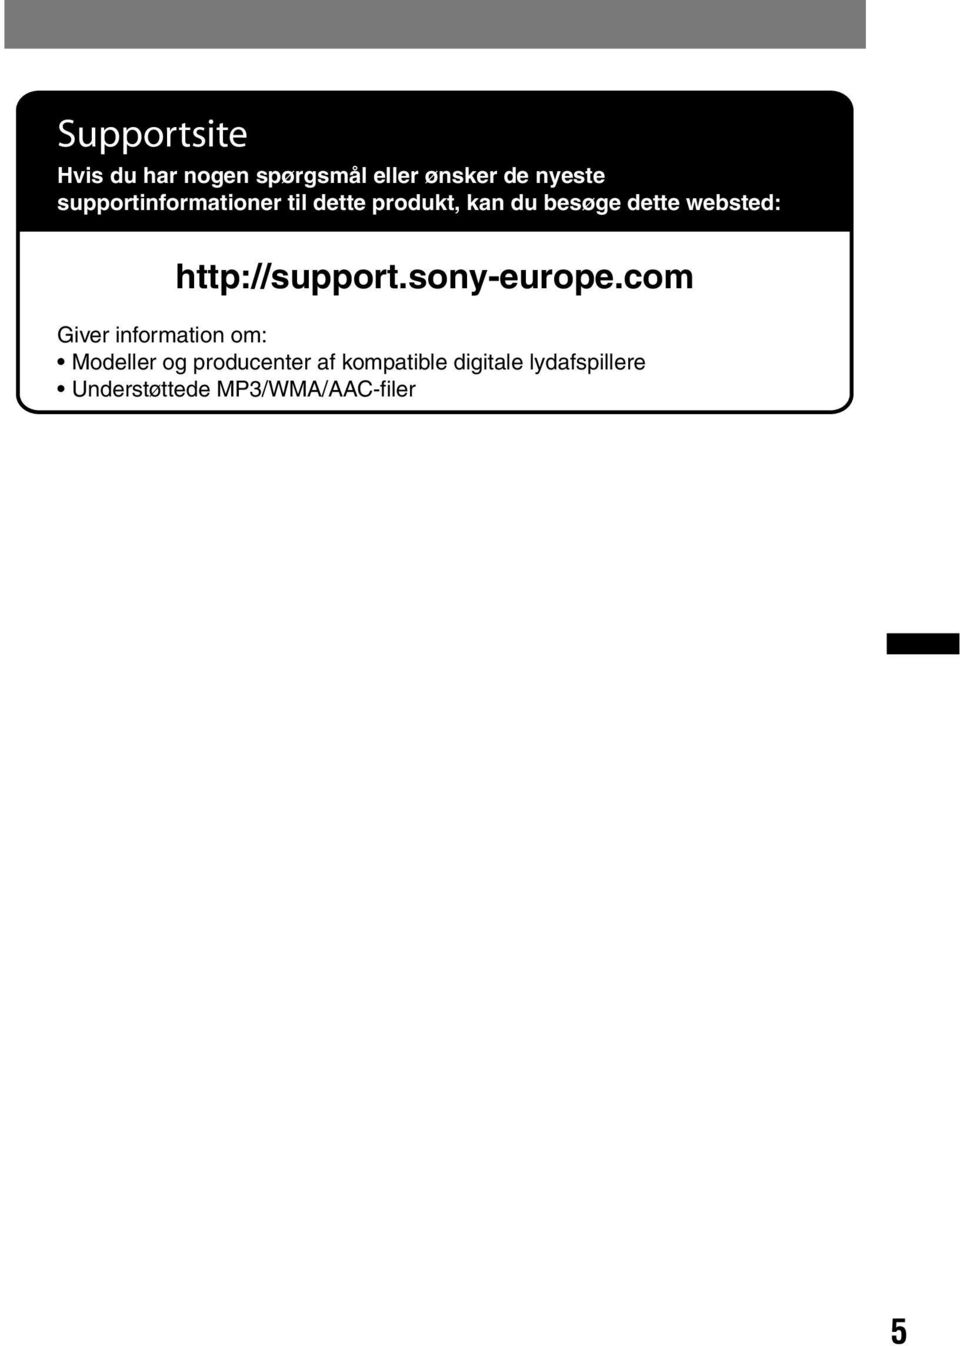 http://support.sony-europe.